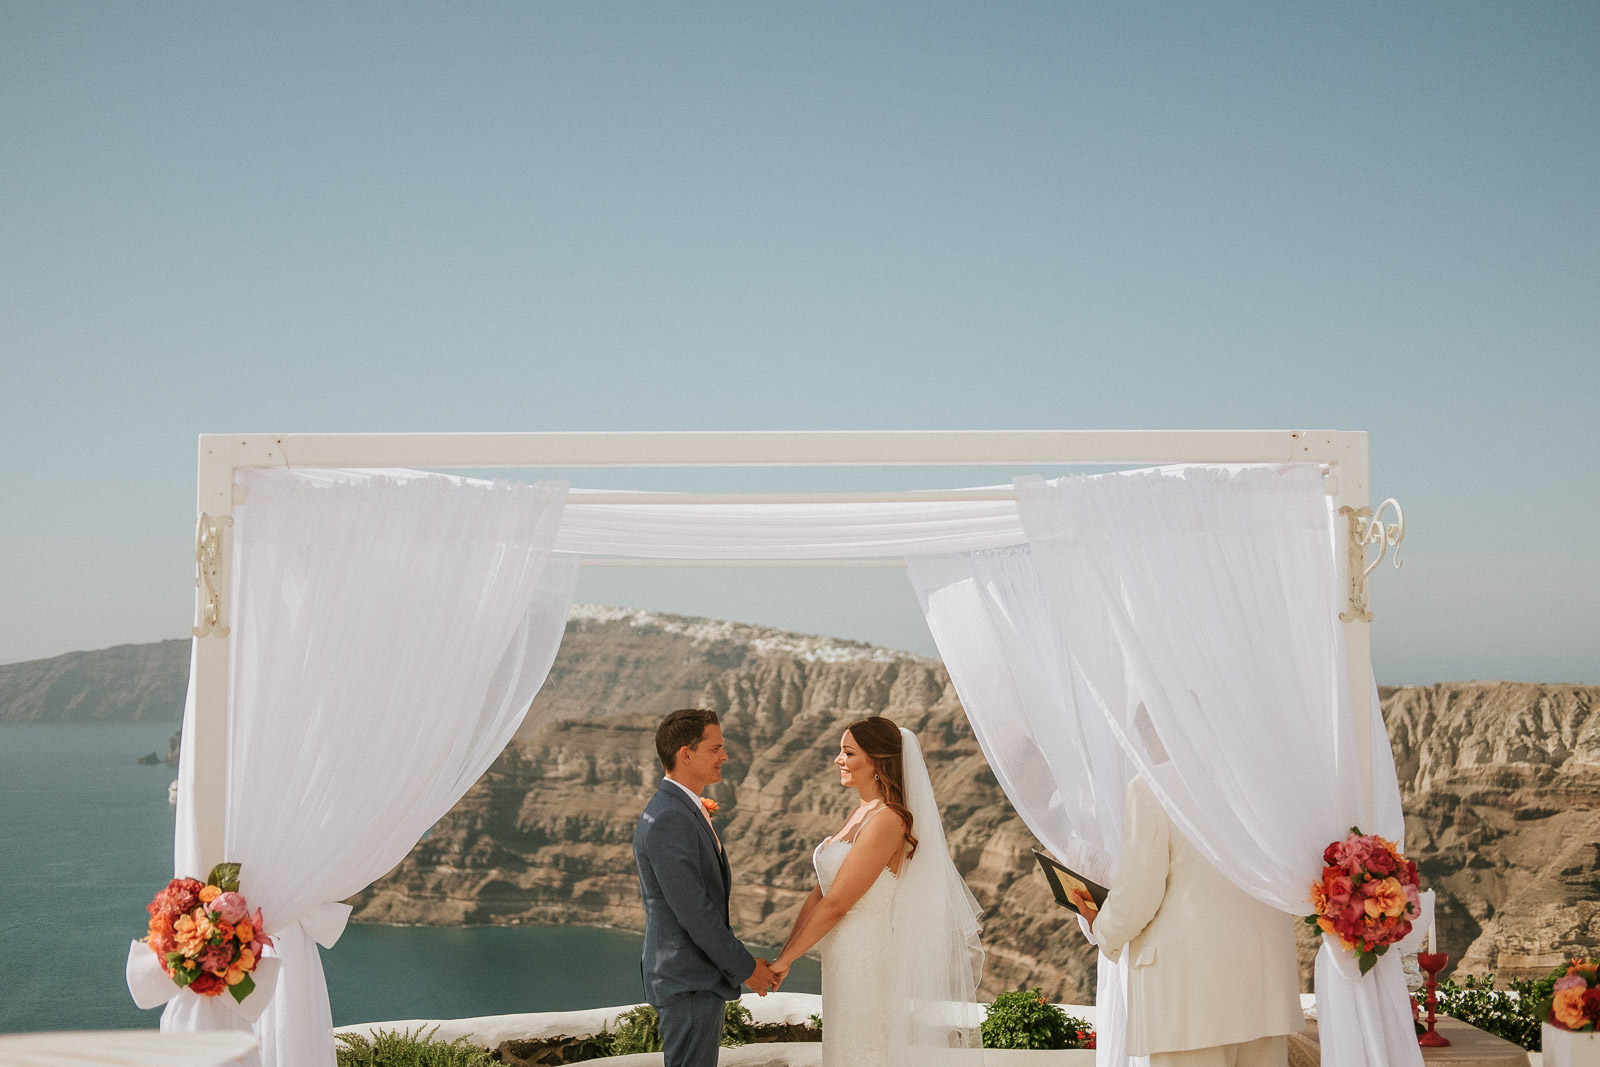 Santorini-Wedding-Photographer-Greece-Destination-Weddings-Mait-Juriado-M&J-Studios-059